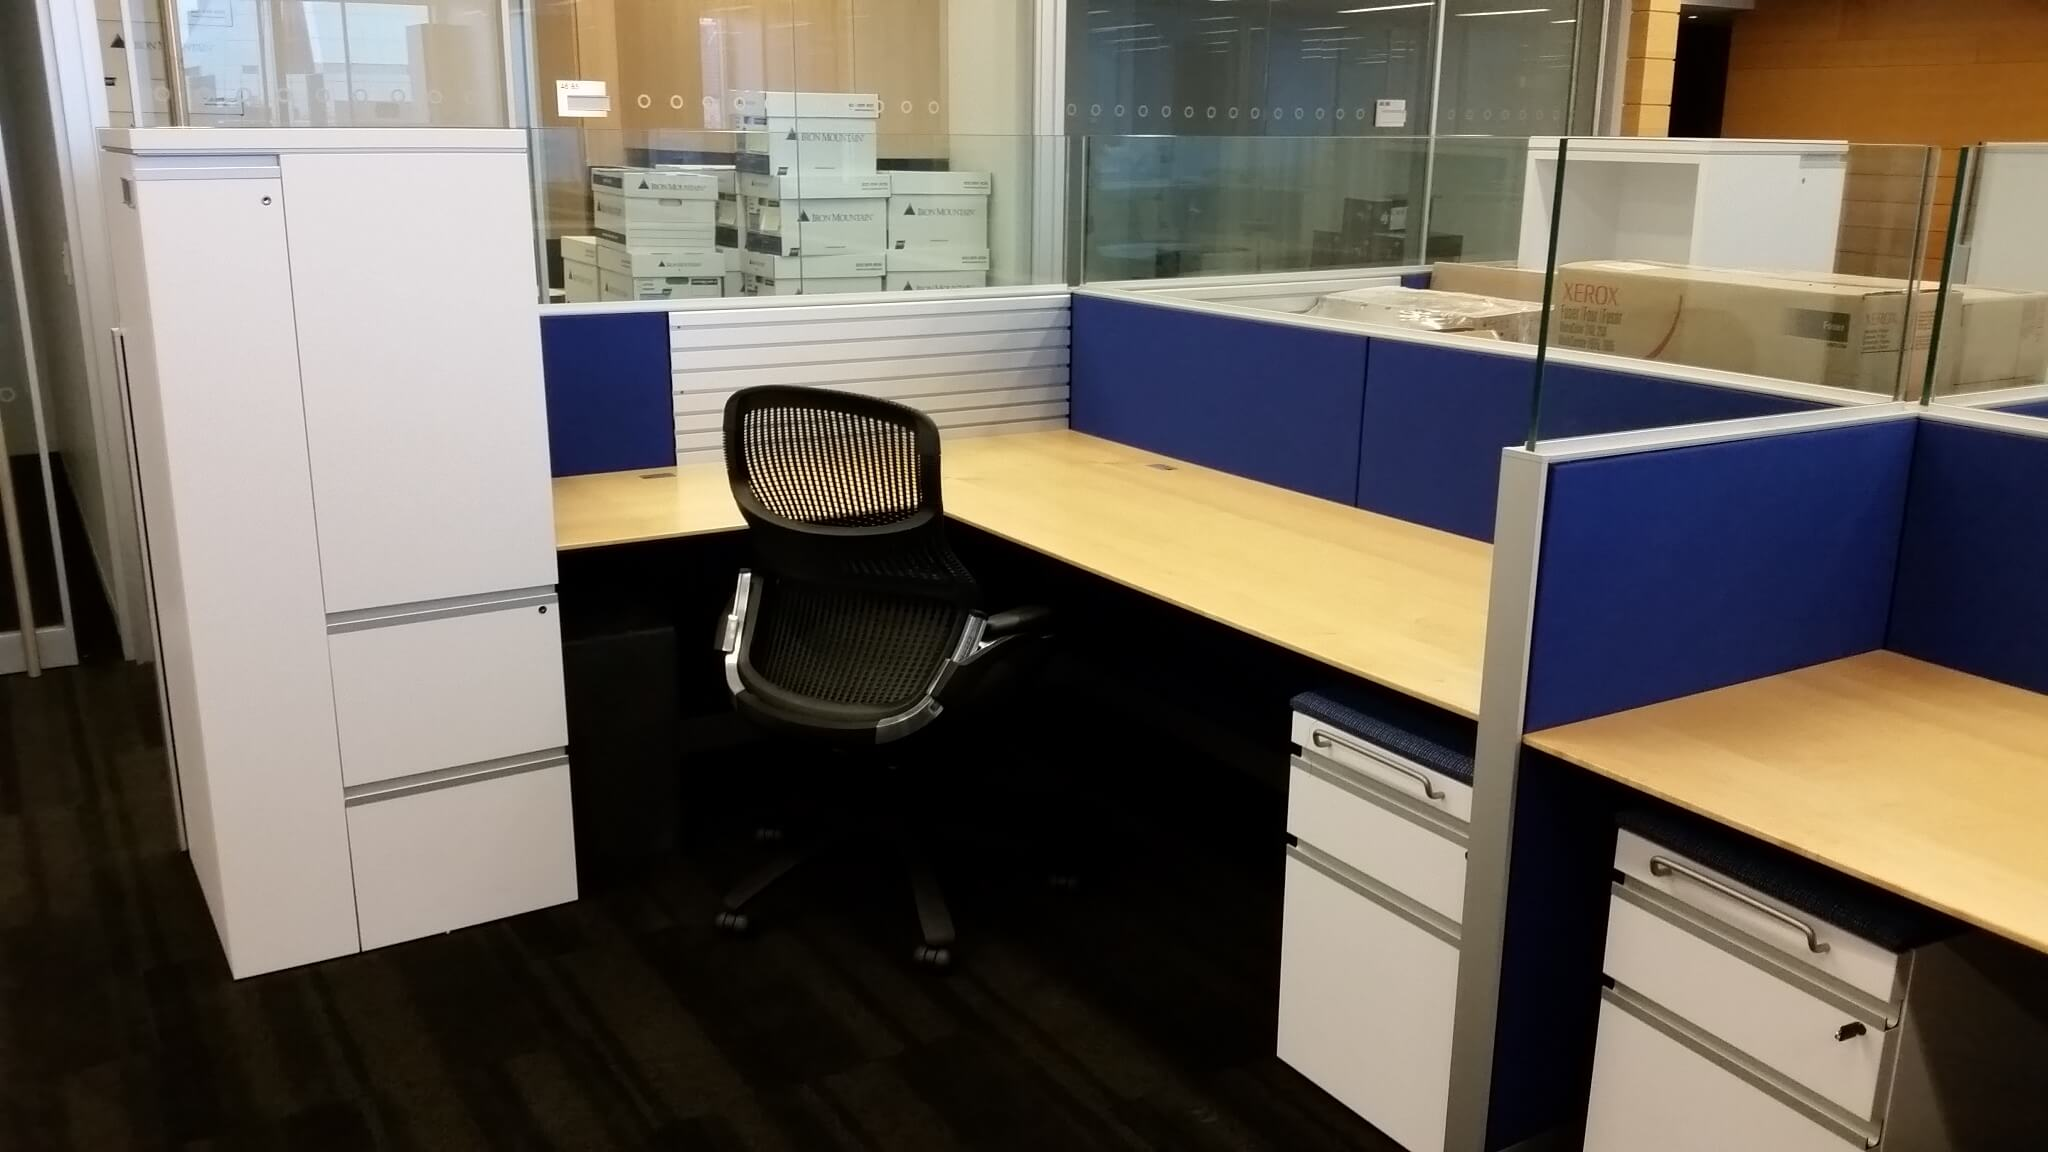 Knoll Autostrada - Used Cubicles